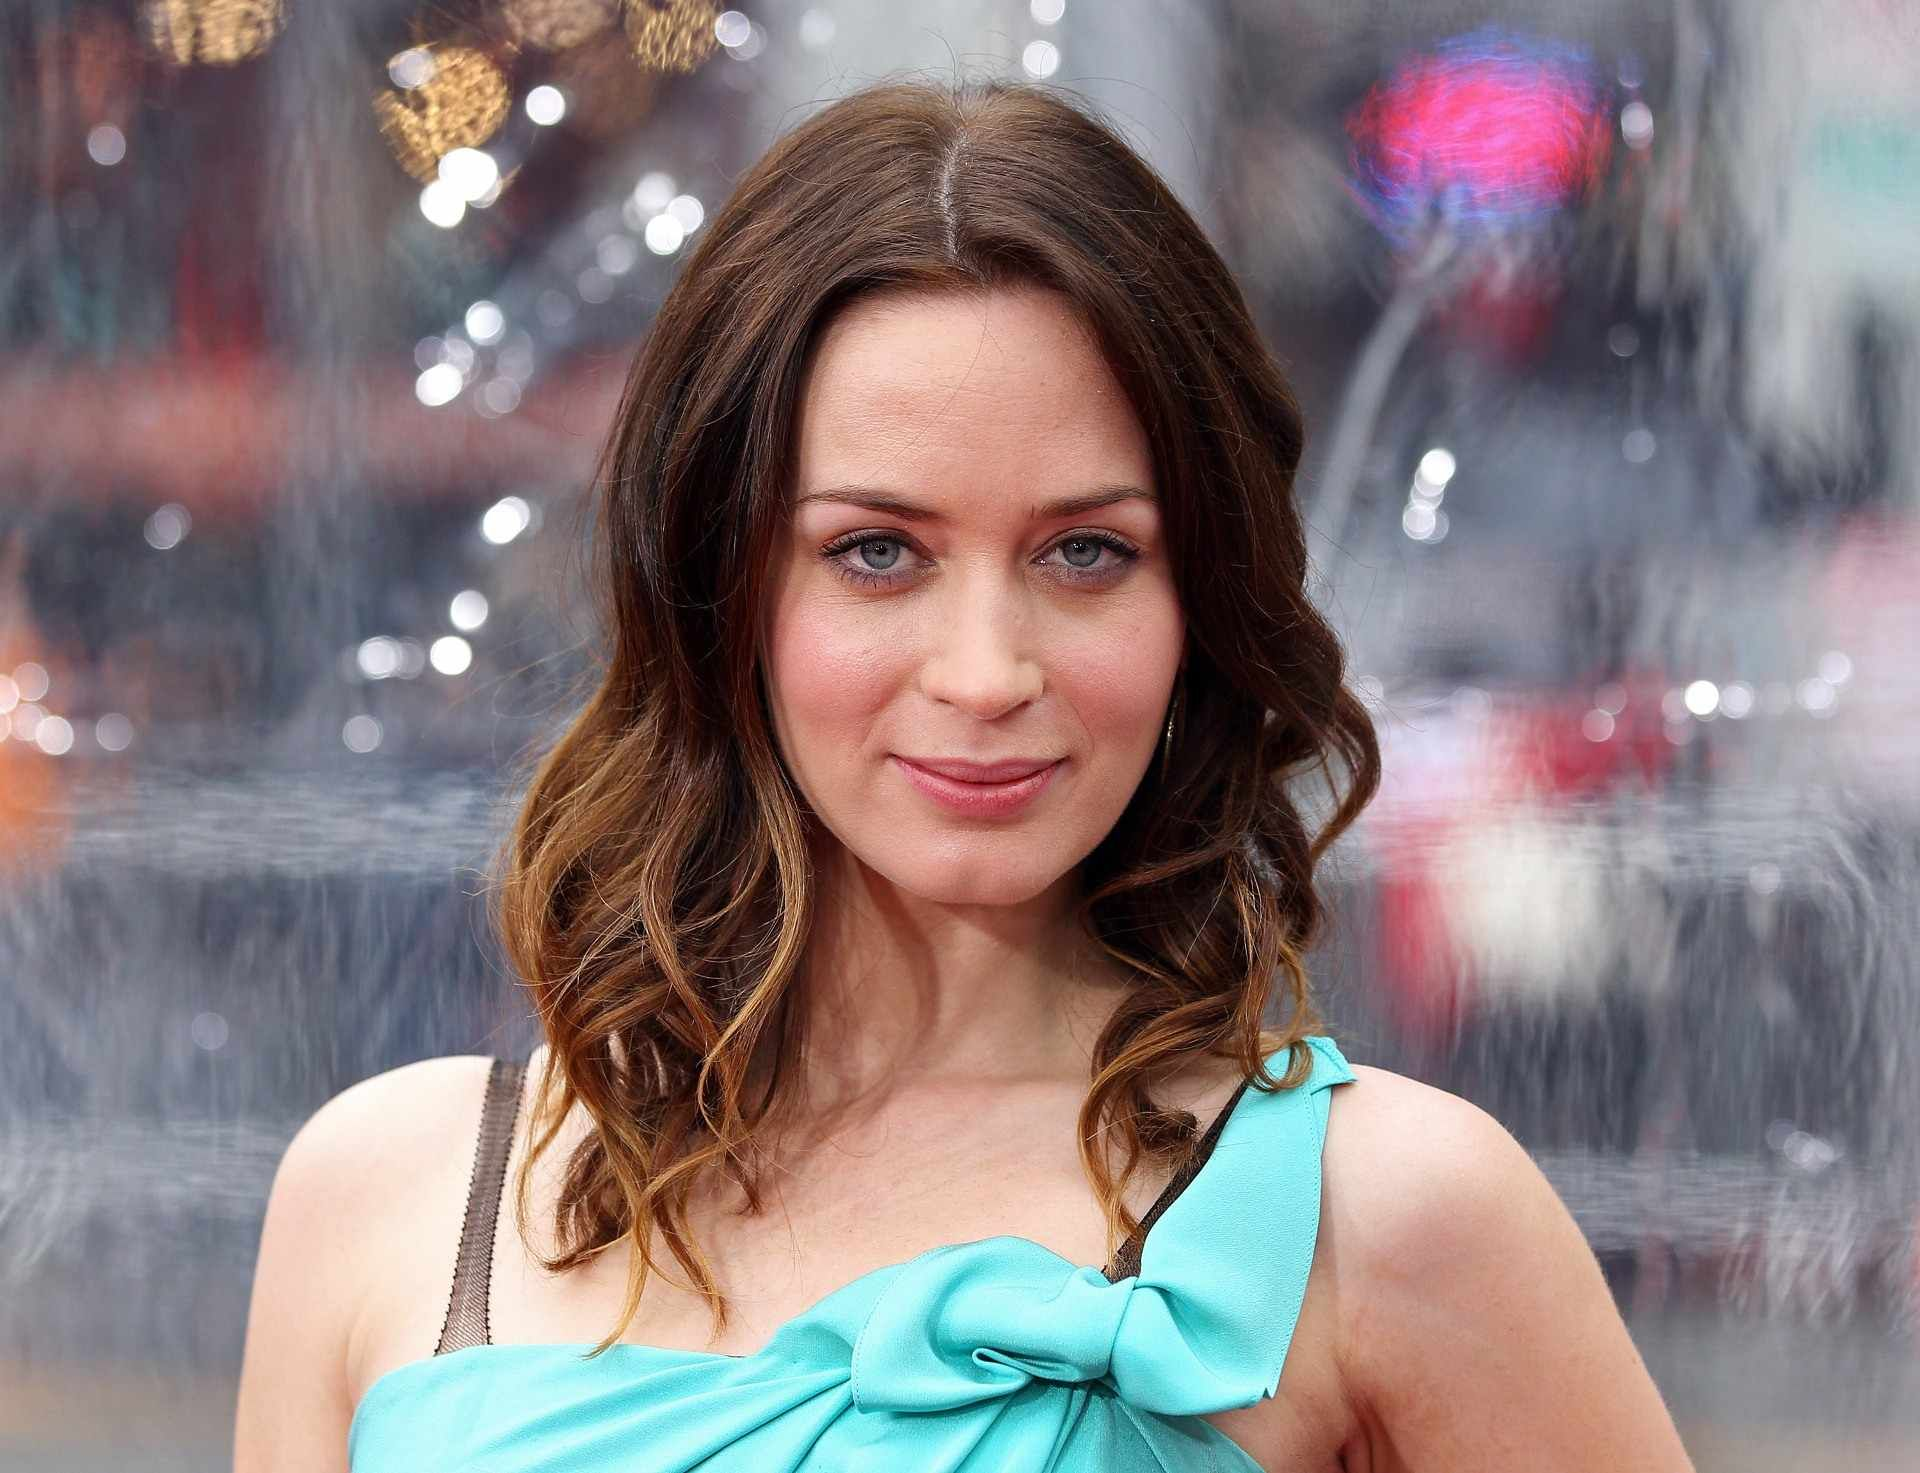 Emily Blunt Wallpapers Hd Free Download Emily Blunt Emily Blunt Family Emily Blunt Bikini